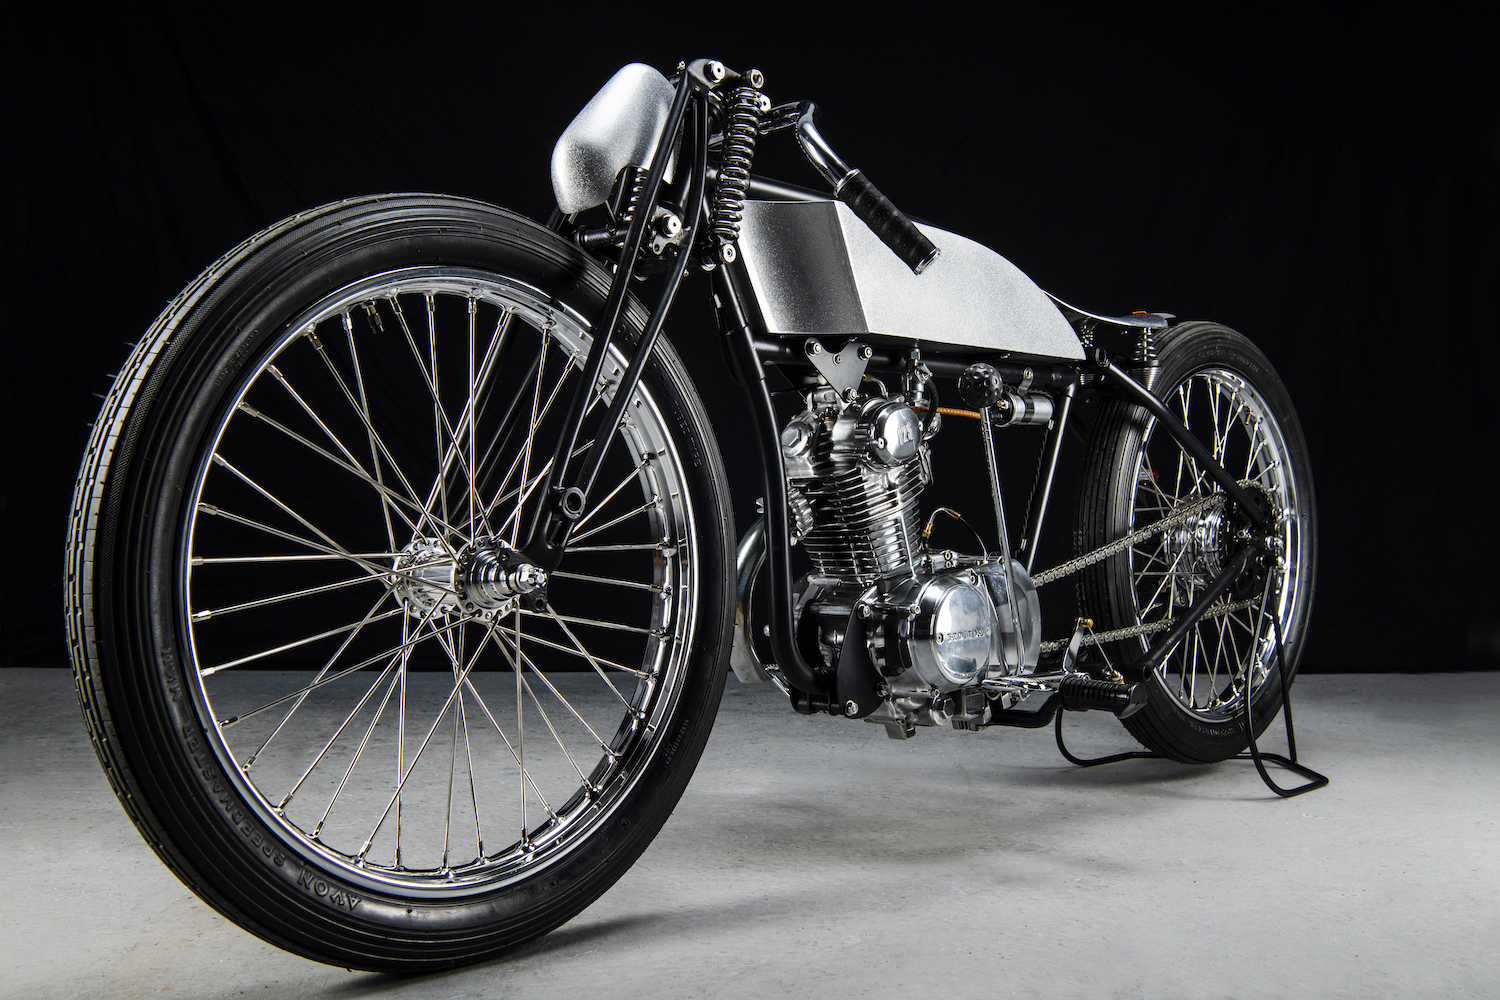 1926 Douglas Boardtracker by Sabotage Motorcycles